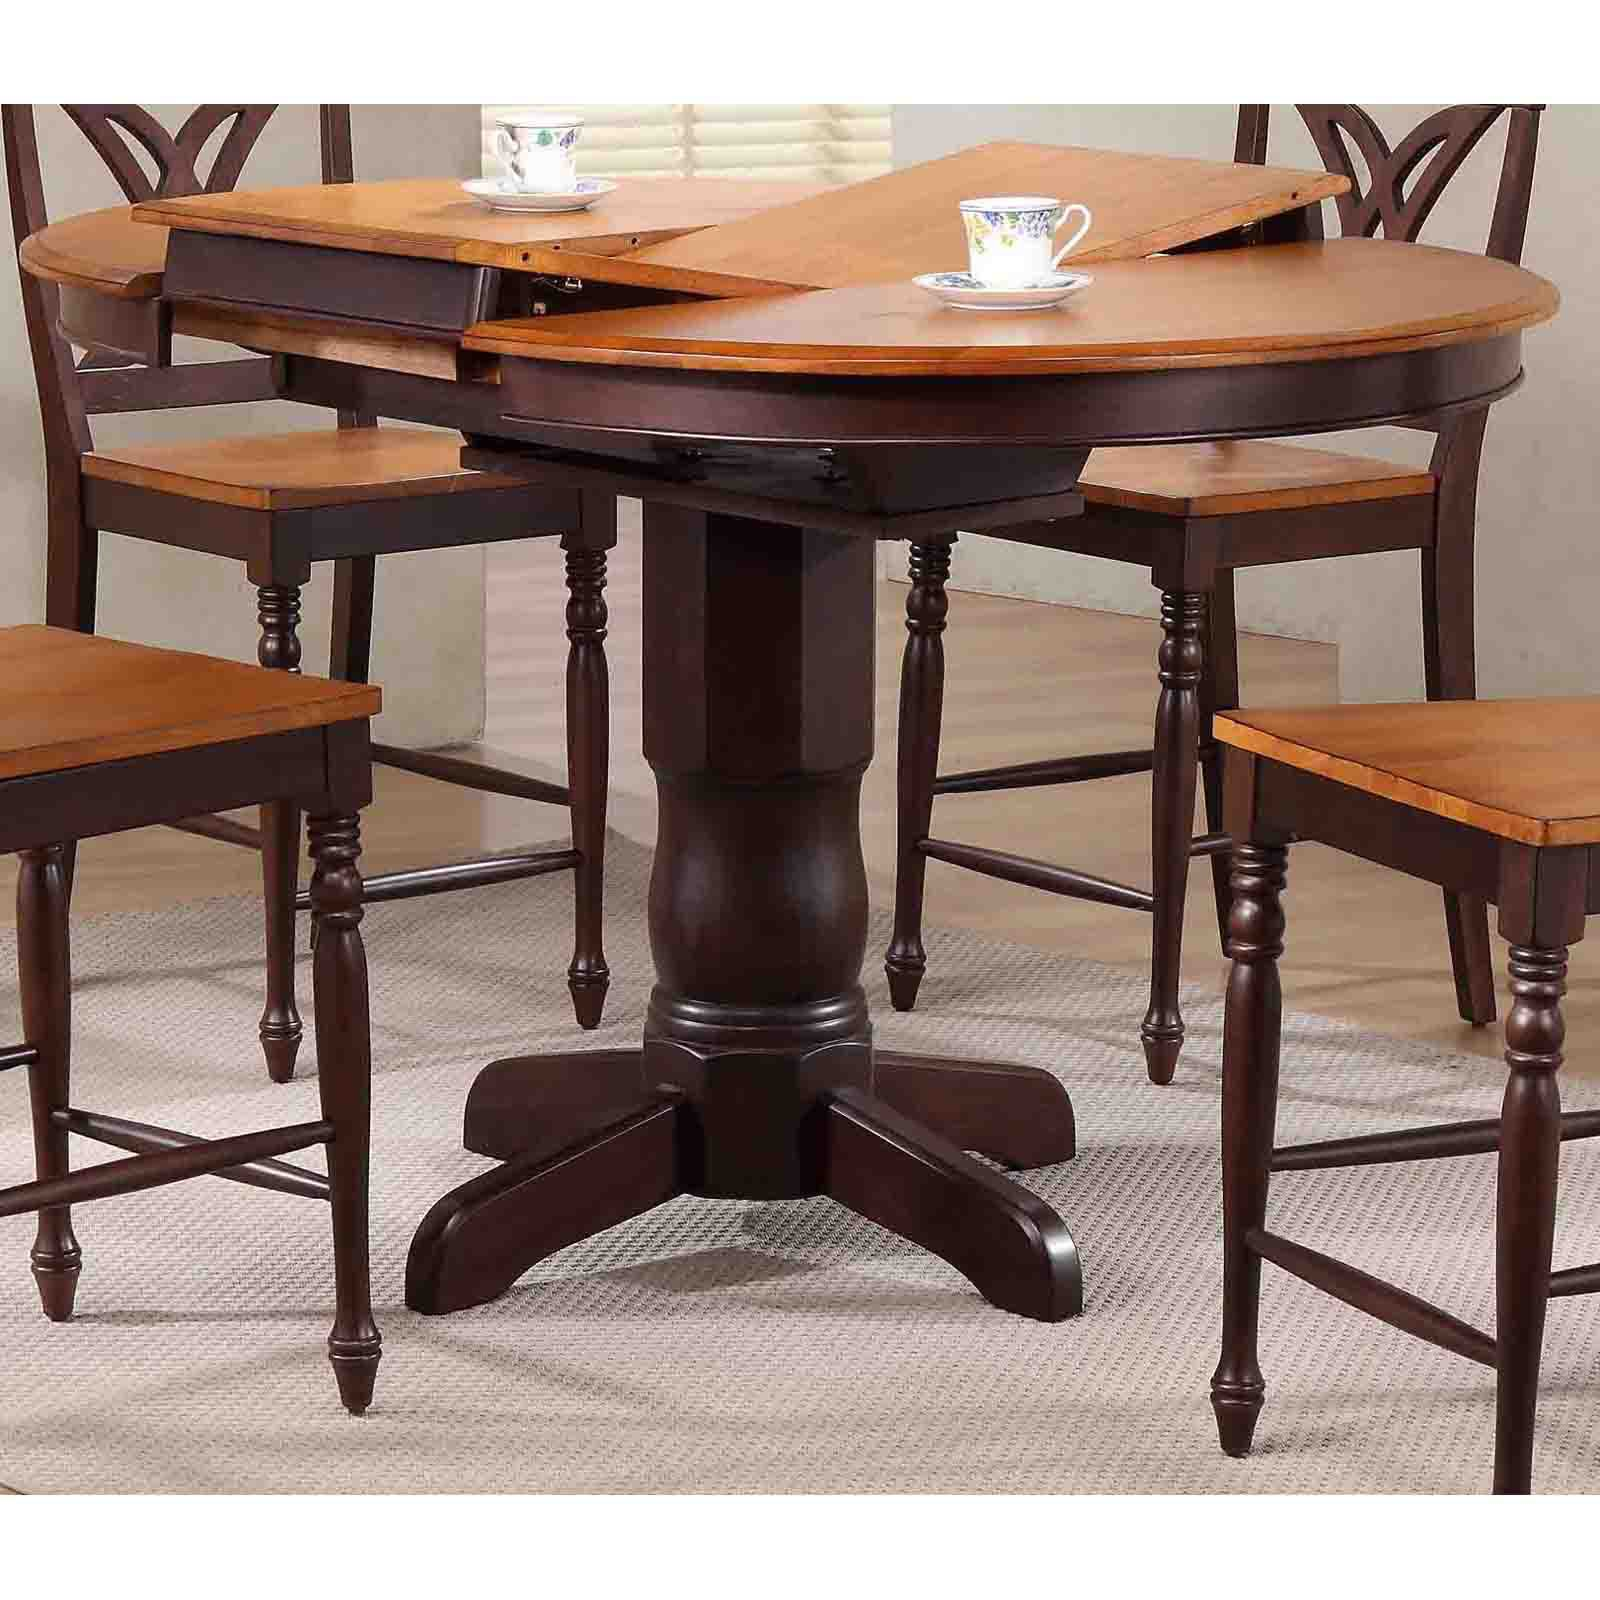 Iconic Furniture 42 in. Round Counter Height Dining Table with Extension Leaf